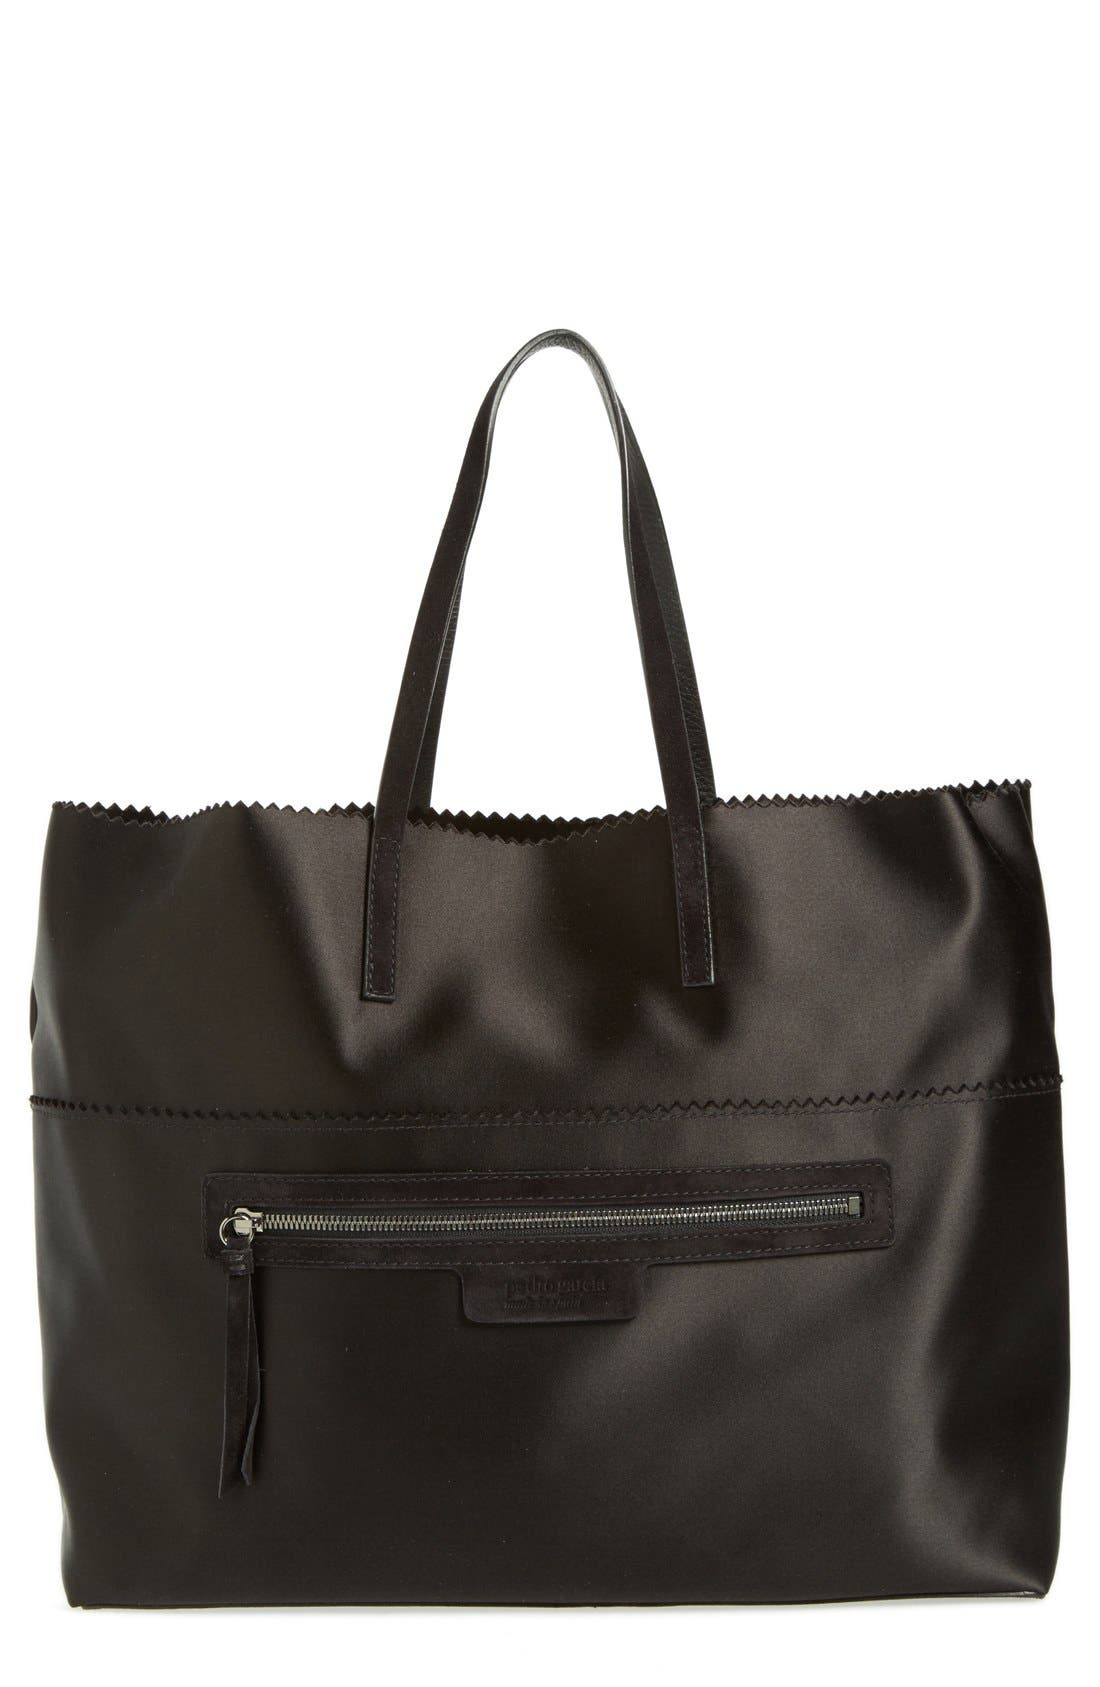 PEDRO GARCIA Satin Shopper